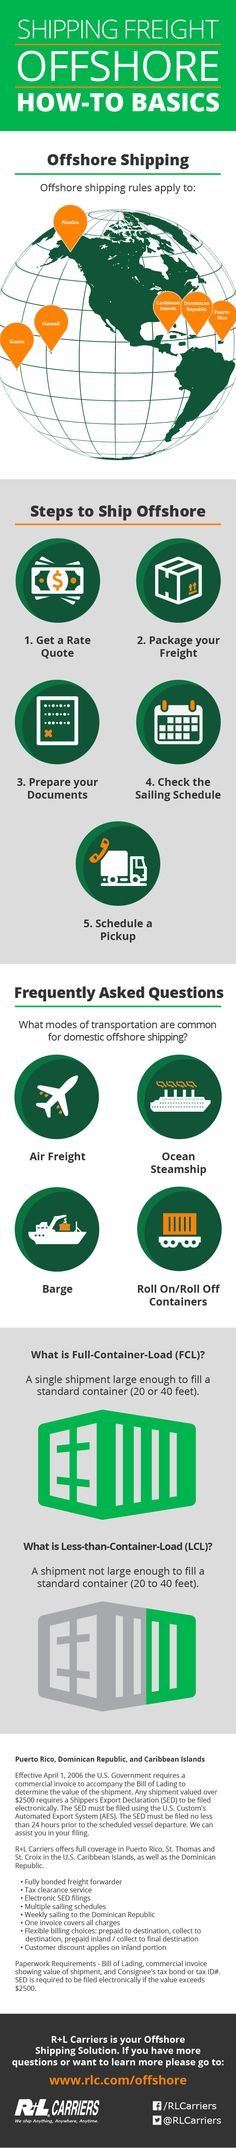 Offshore shipping includes the markets of Puerto